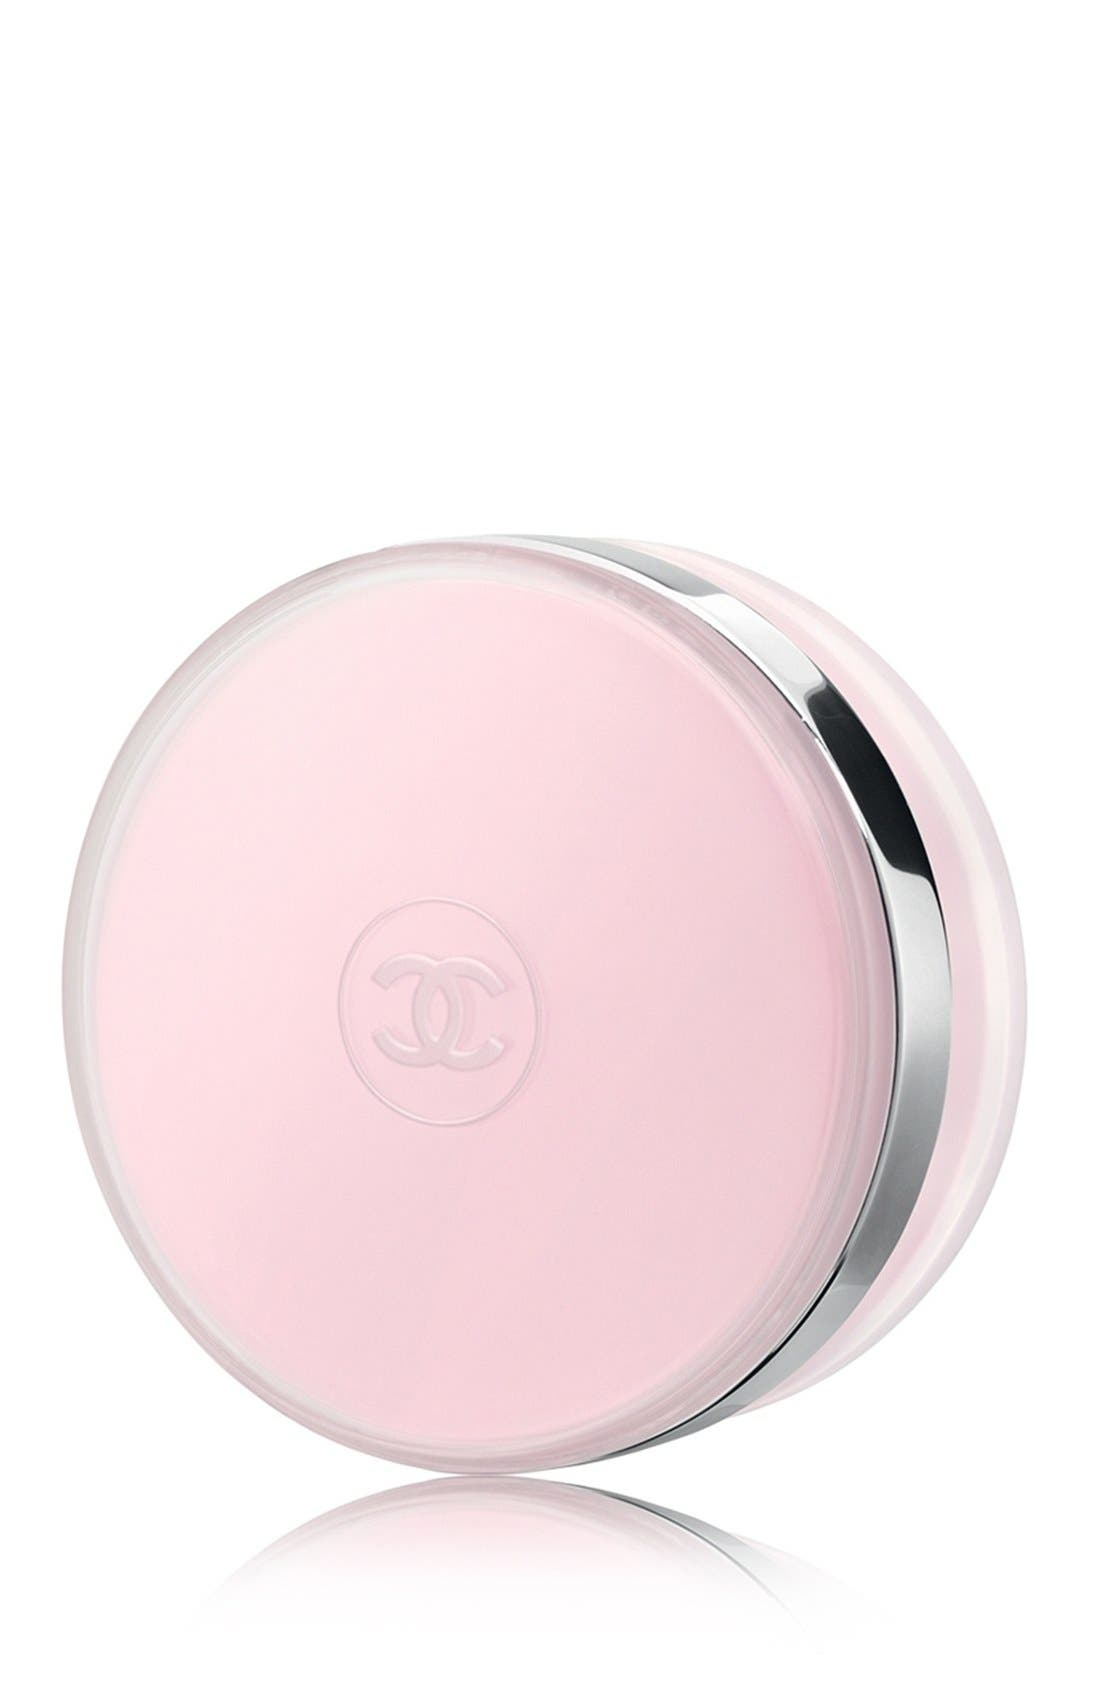 CHANEL CHANCE EAU TENDRE<br />Moisturizing Body Cream, Main, color, NO COLOR